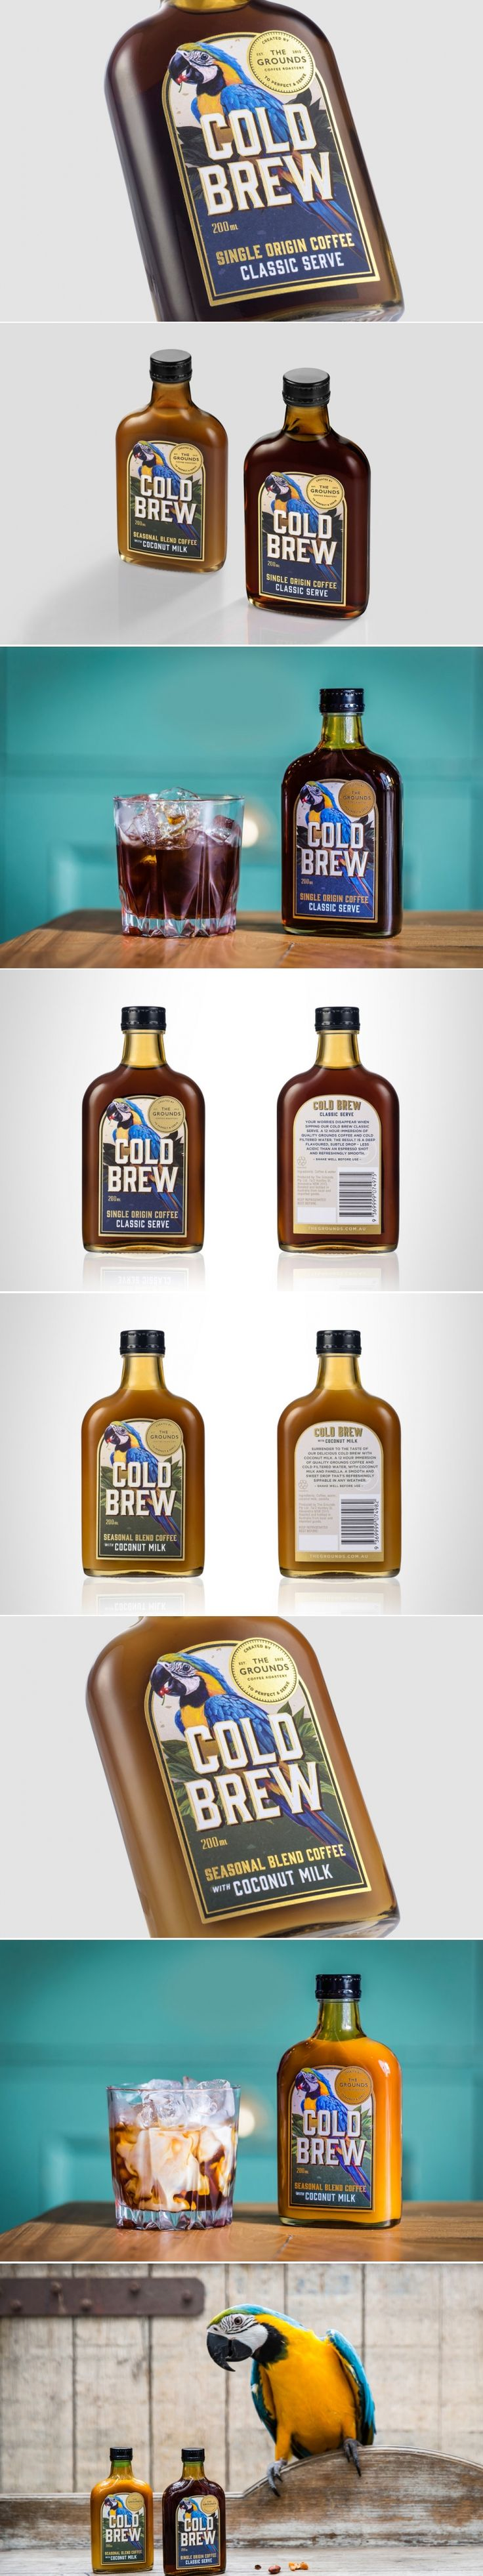 Let This Refreshing Cold Brew Transport You To the Tropics — The Dieline | Packaging & Branding Design & Innovation News